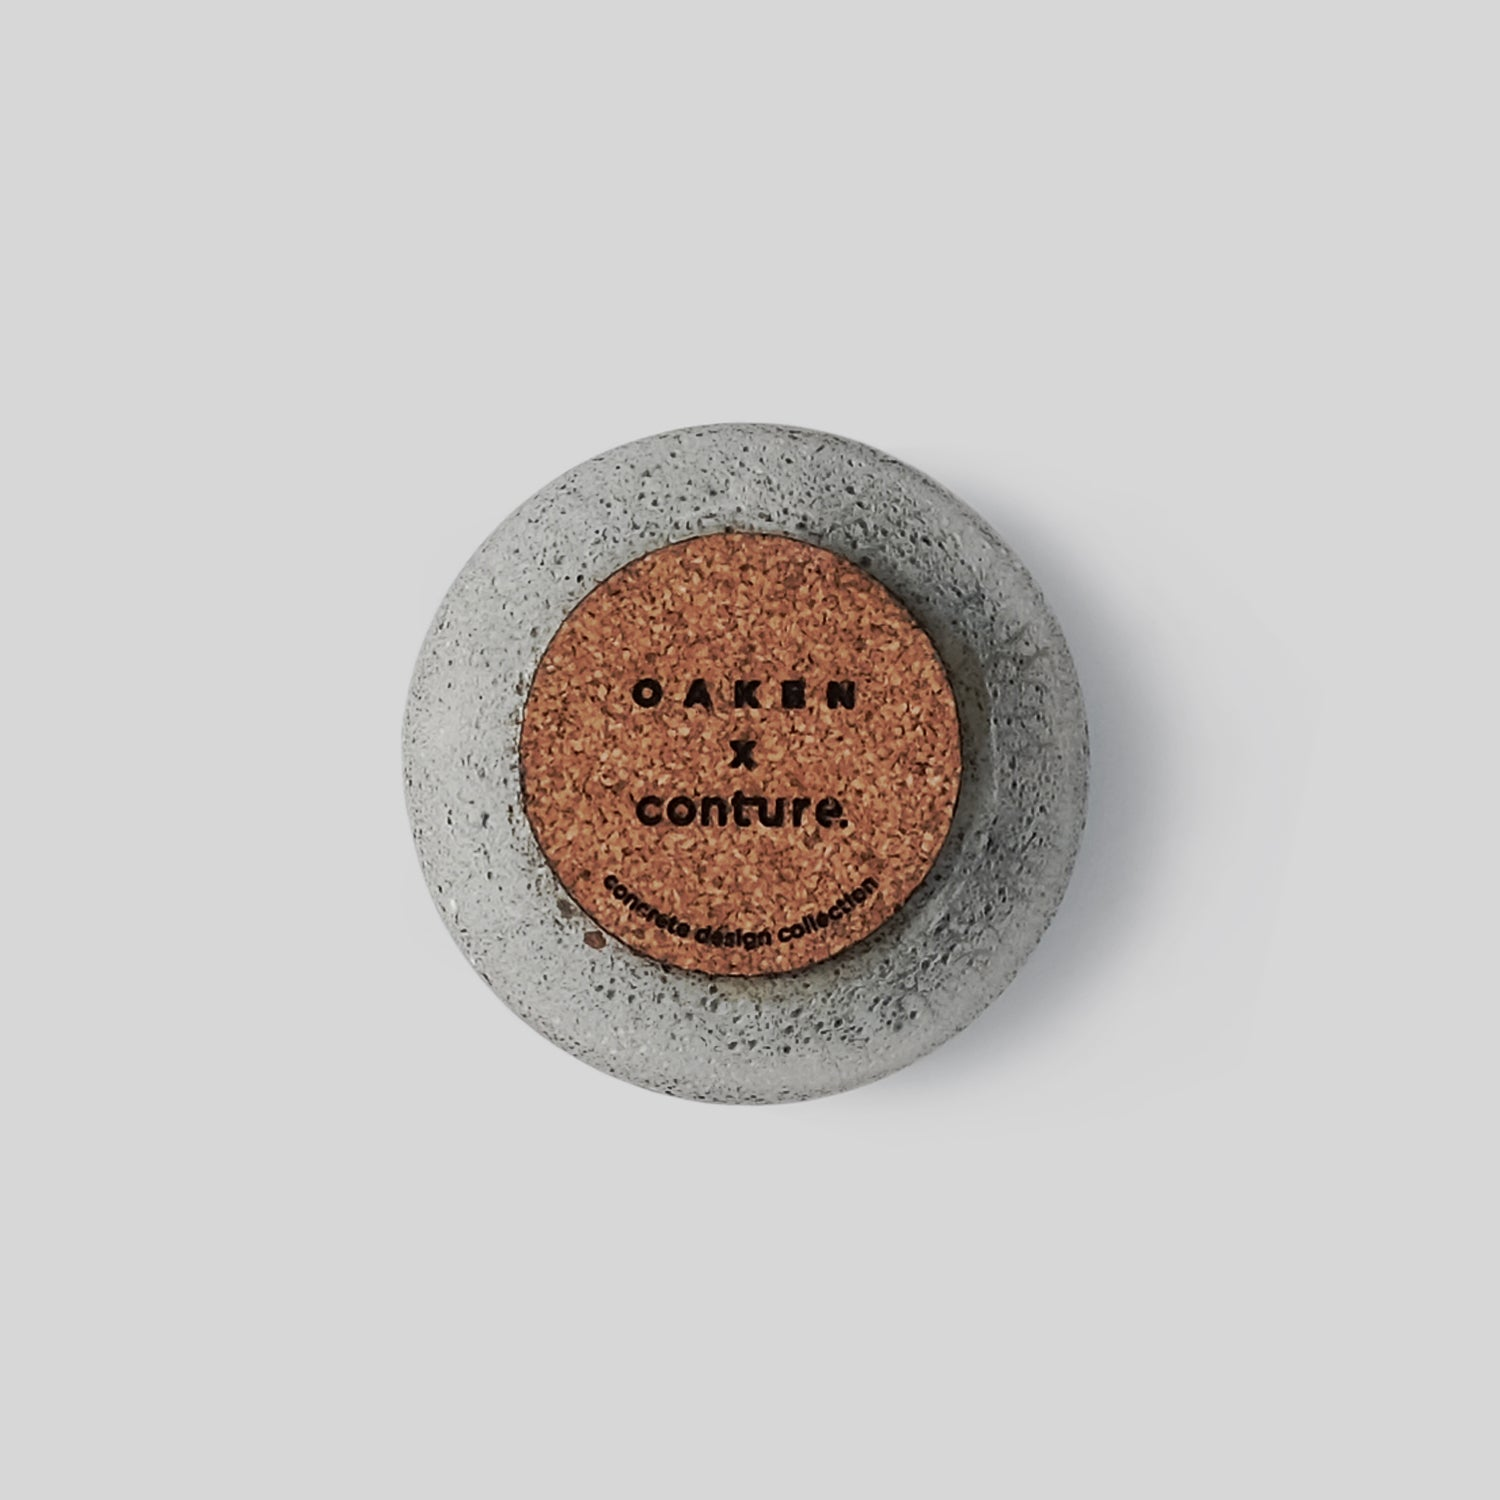 Concrete Incense Holder - Oaken x Conture